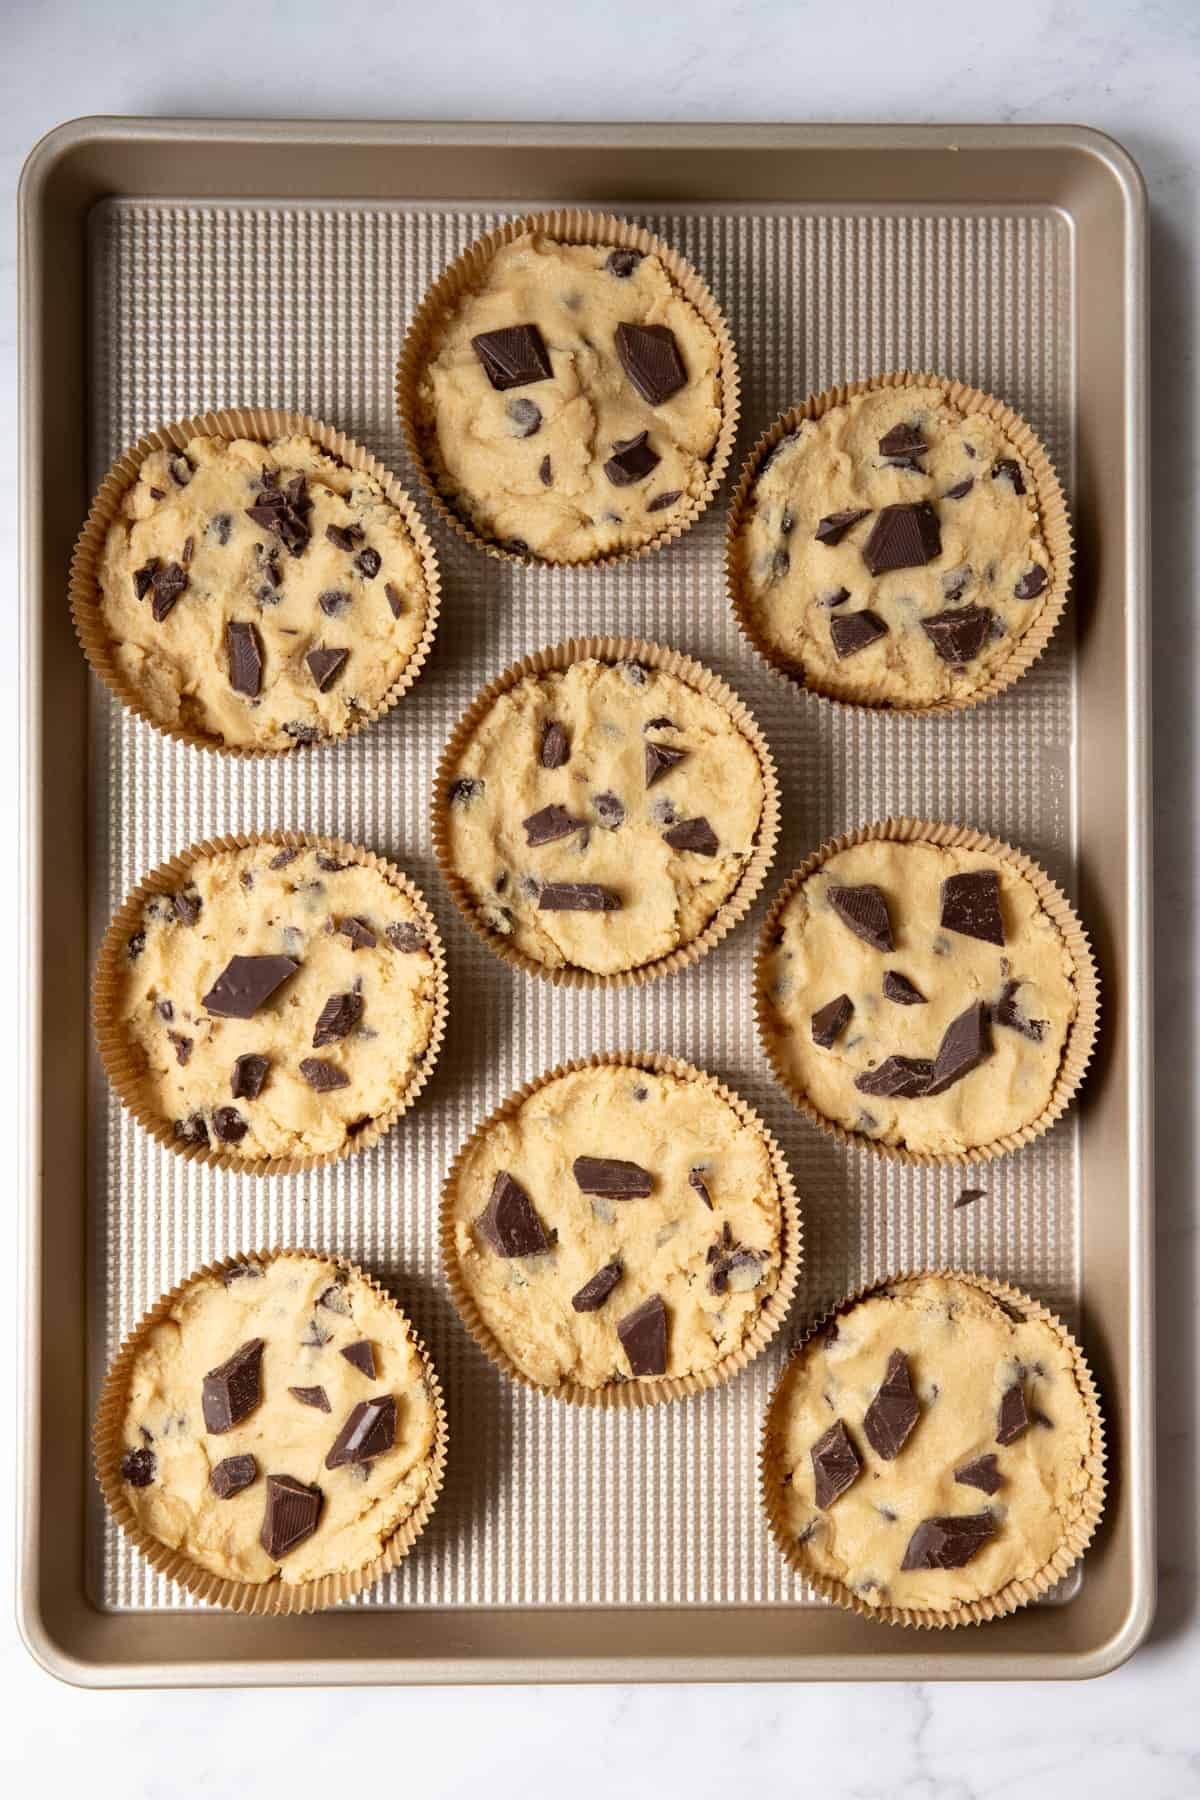 cookie dough in the individual pans before serving